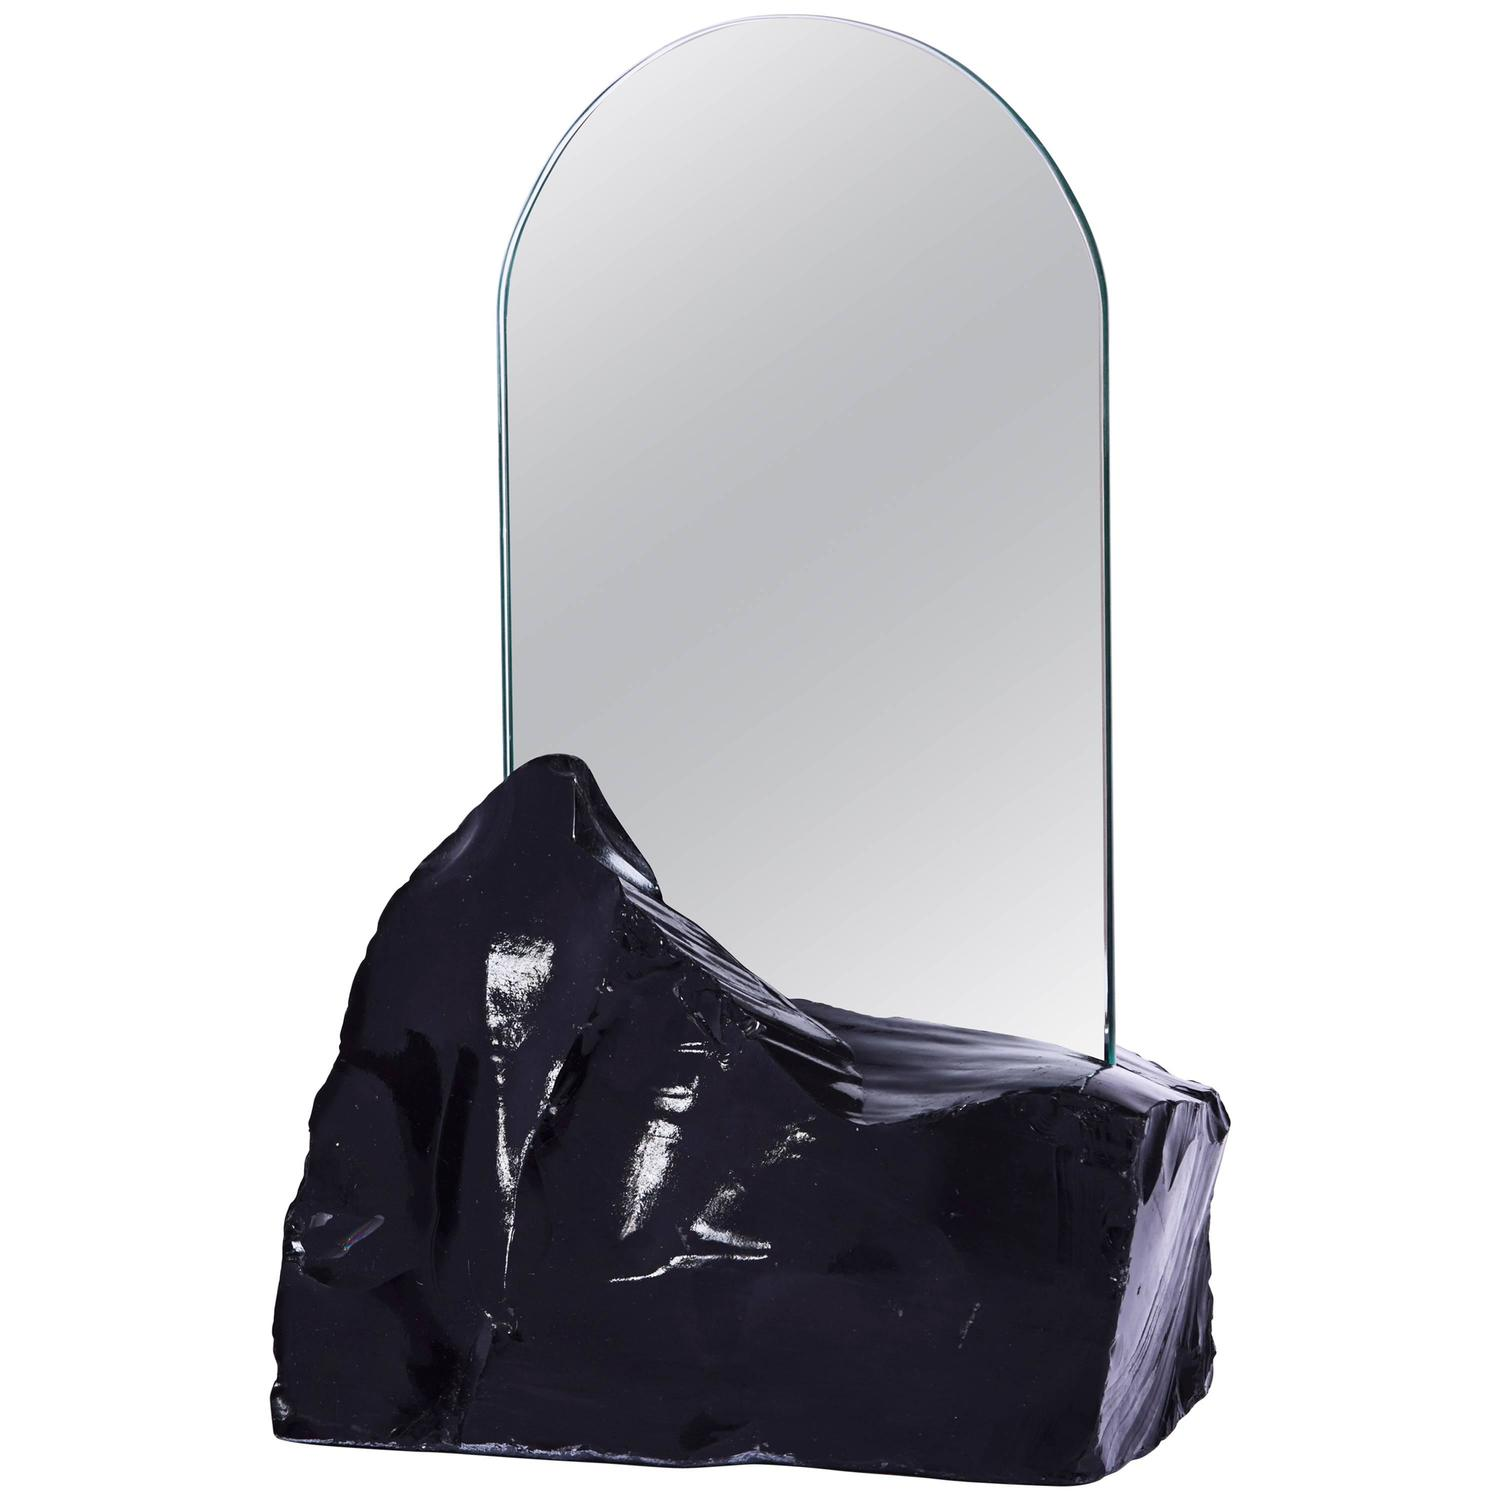 Antique and Vintage Table Mirrors - 833 For Sale at 1stdibs